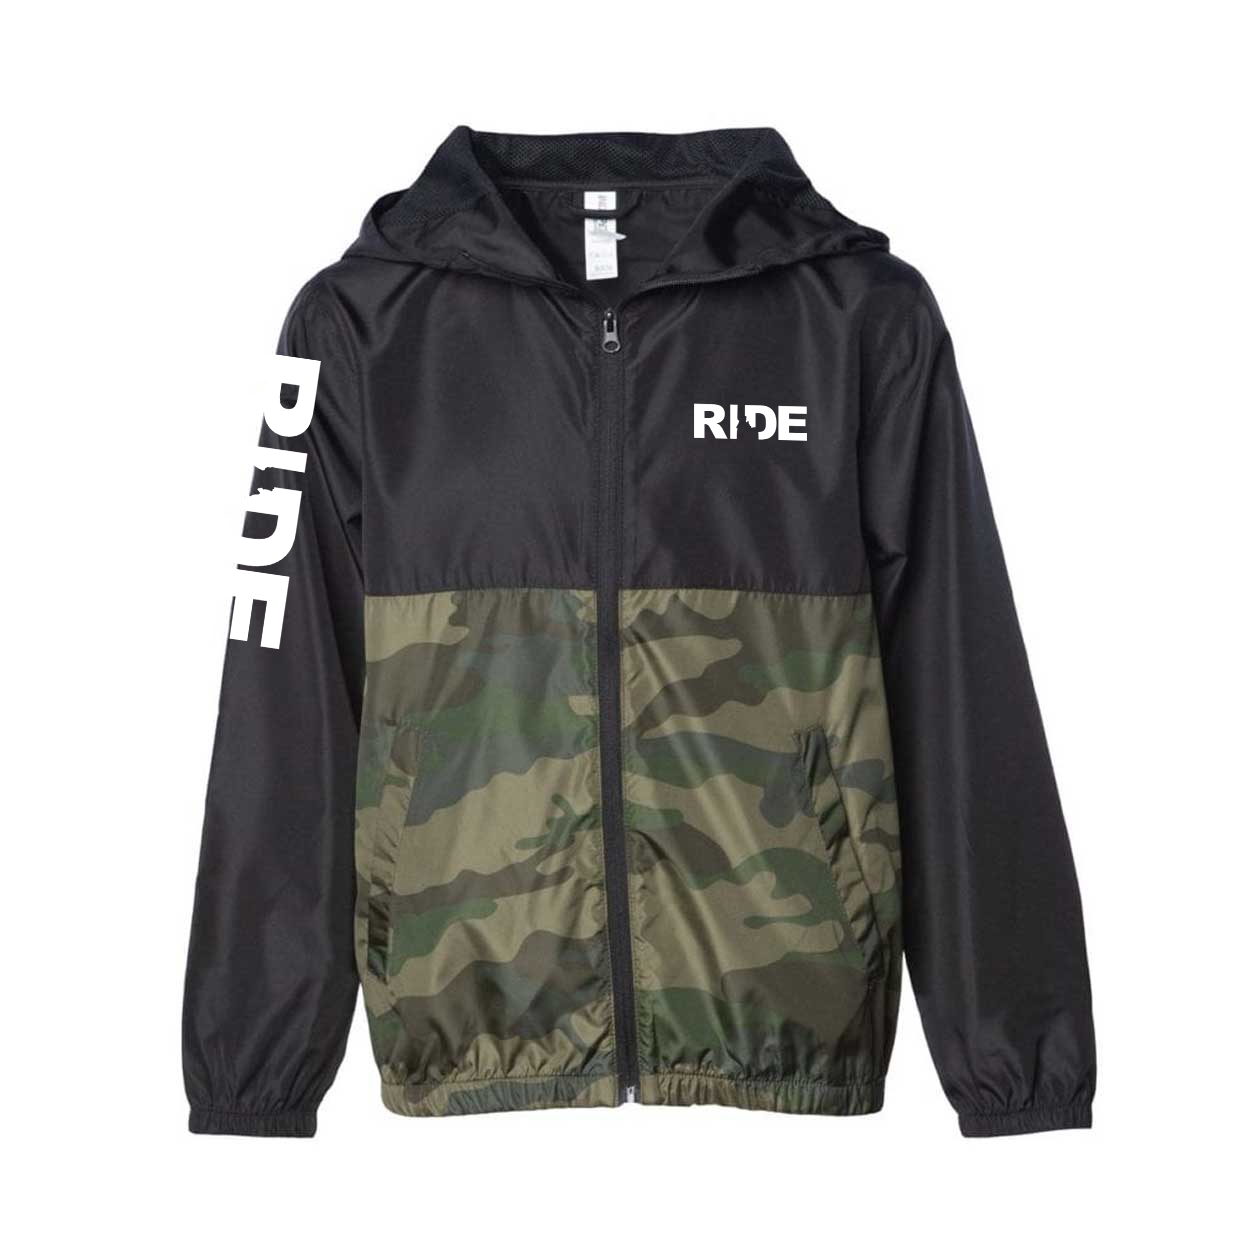 Ride Idaho Classic Youth Lightweight Windbreaker Black/Forest Camo (White Logo)